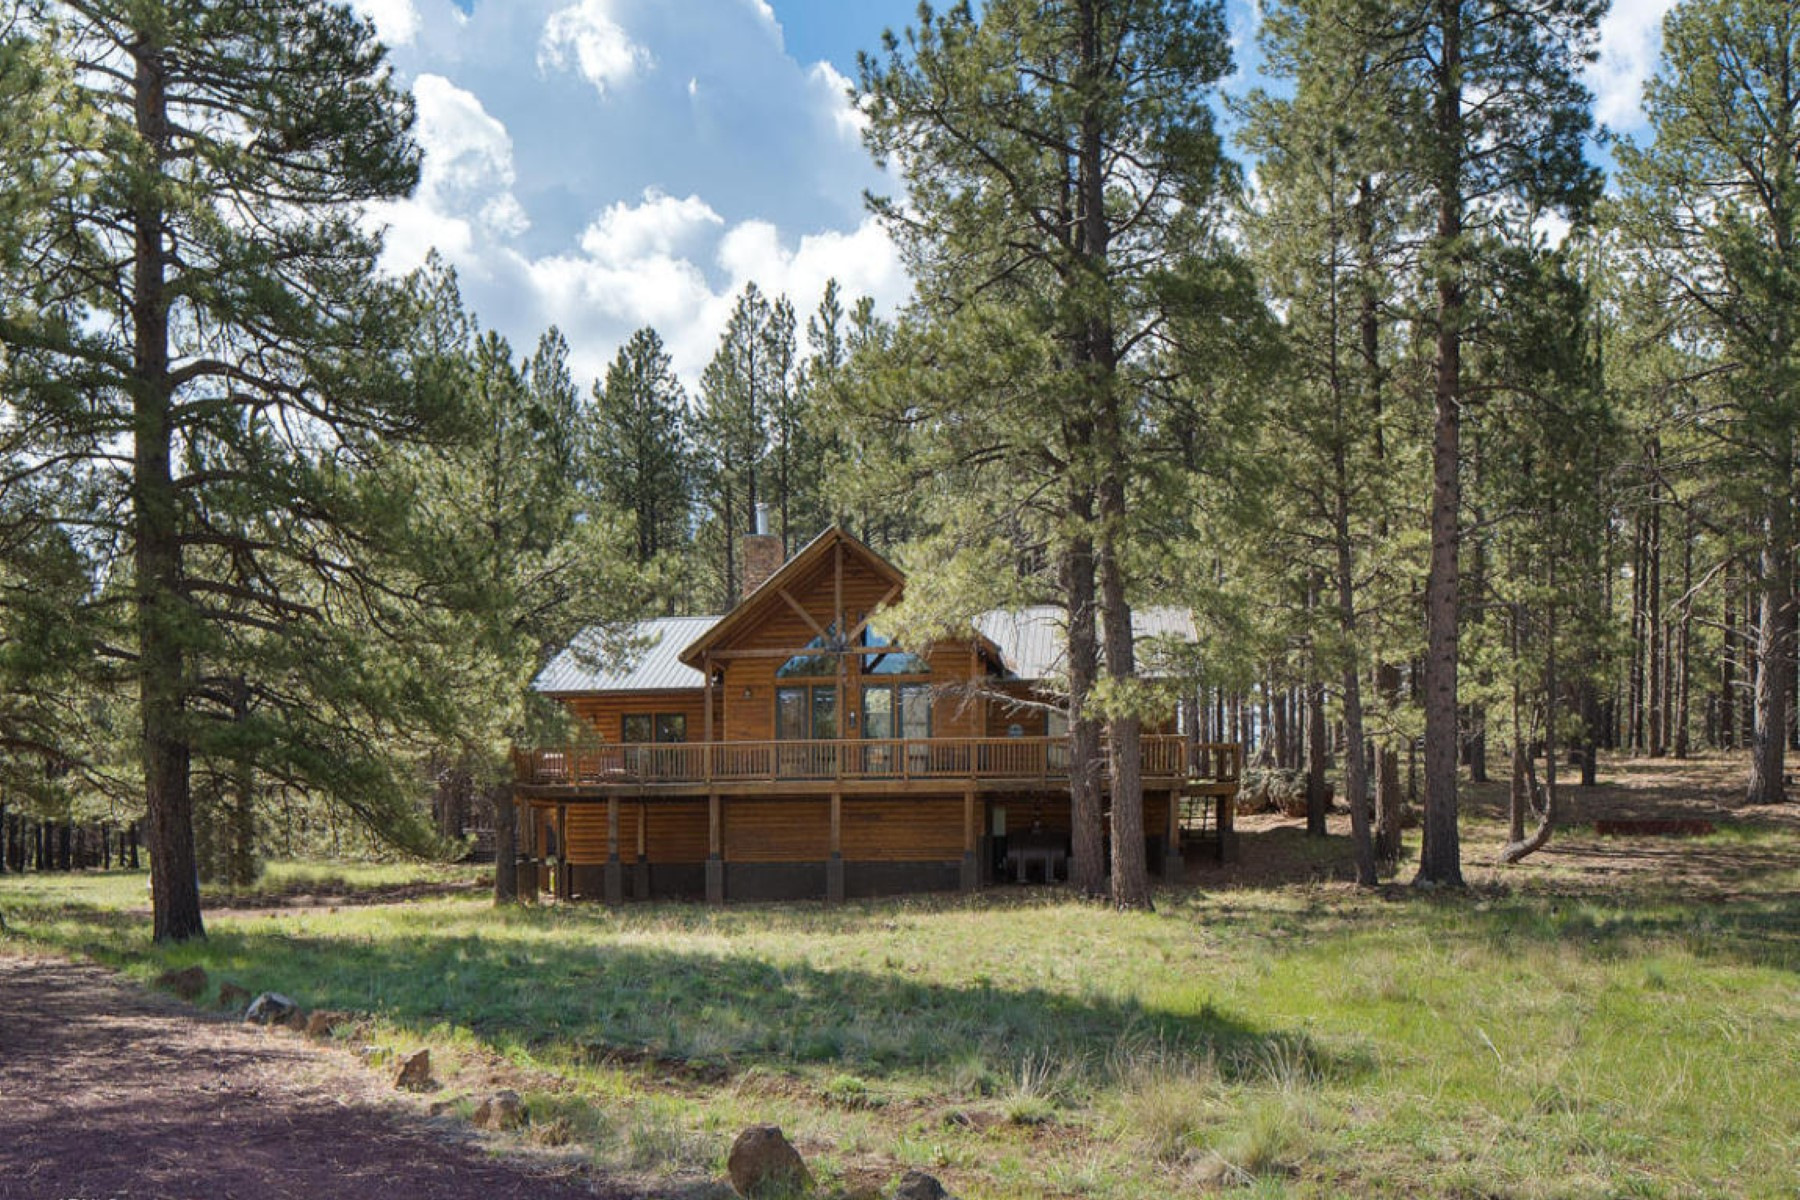 Maison unifamiliale pour l Vente à Secluded log sided home 17242 N Crowley Trl Flagstaff, Arizona, 86001 États-Unis